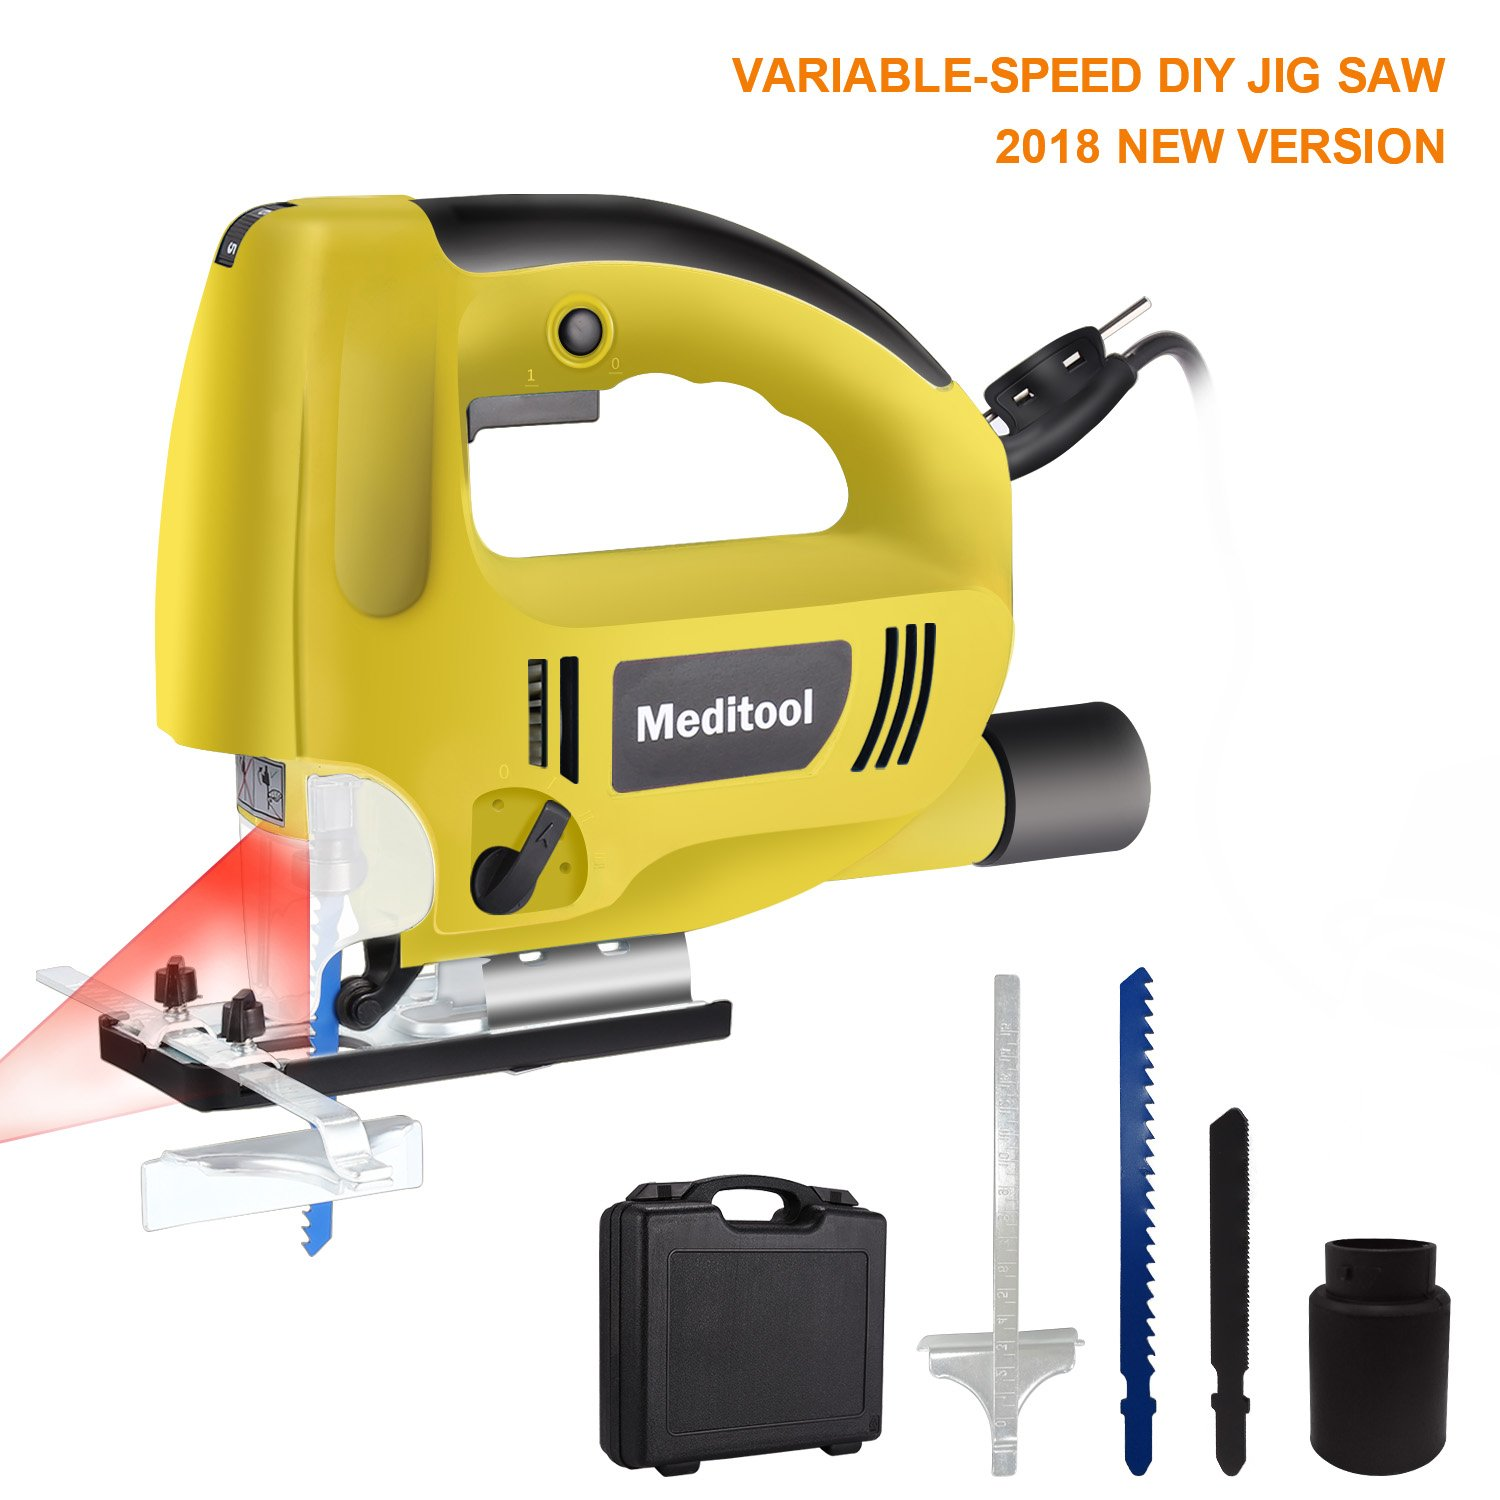 Meditool Top-handle Jig Saw Kit, Variable Speed Electric Saw with 5.9FT Cord, Built-in Laser & Led Light, 45-Degree Max Mitre Angle Adjustable, Dust Extraction Connector, Parallel Guide, Two Blades